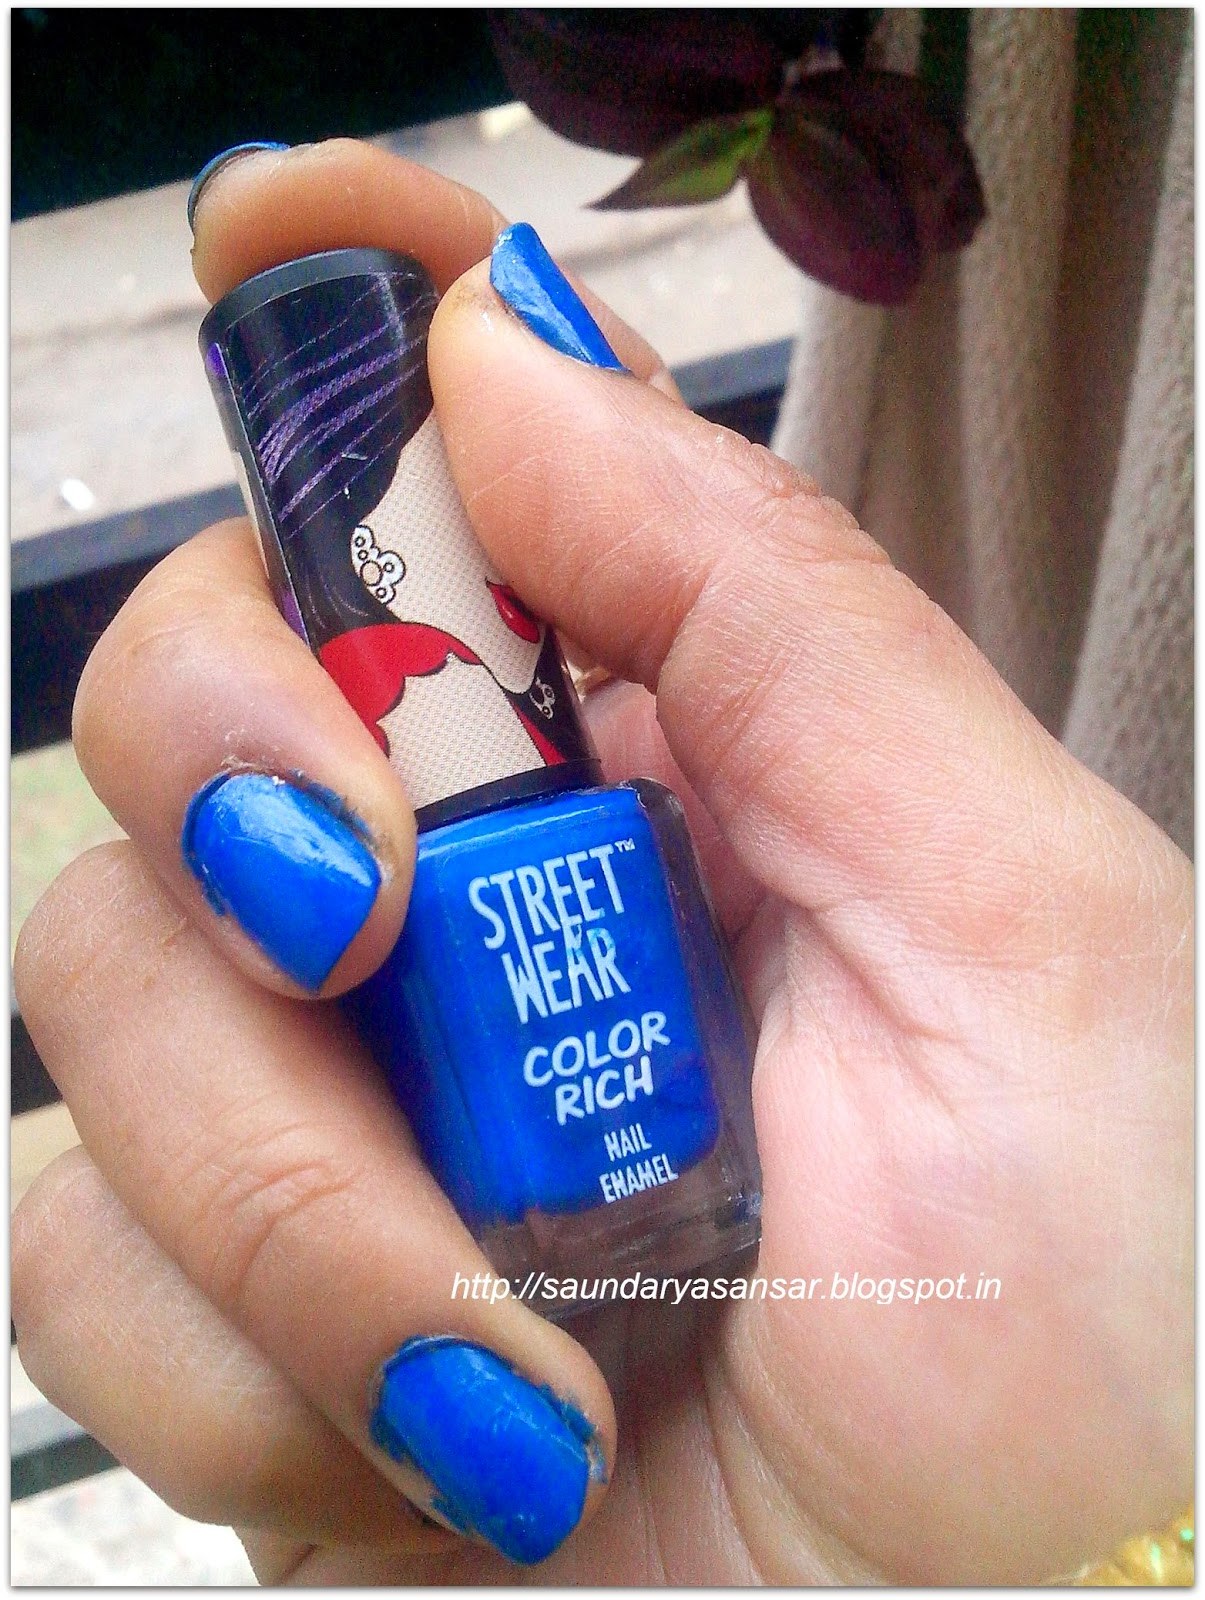 Street Wear Color Rich Nail Enamel Review, Swatch